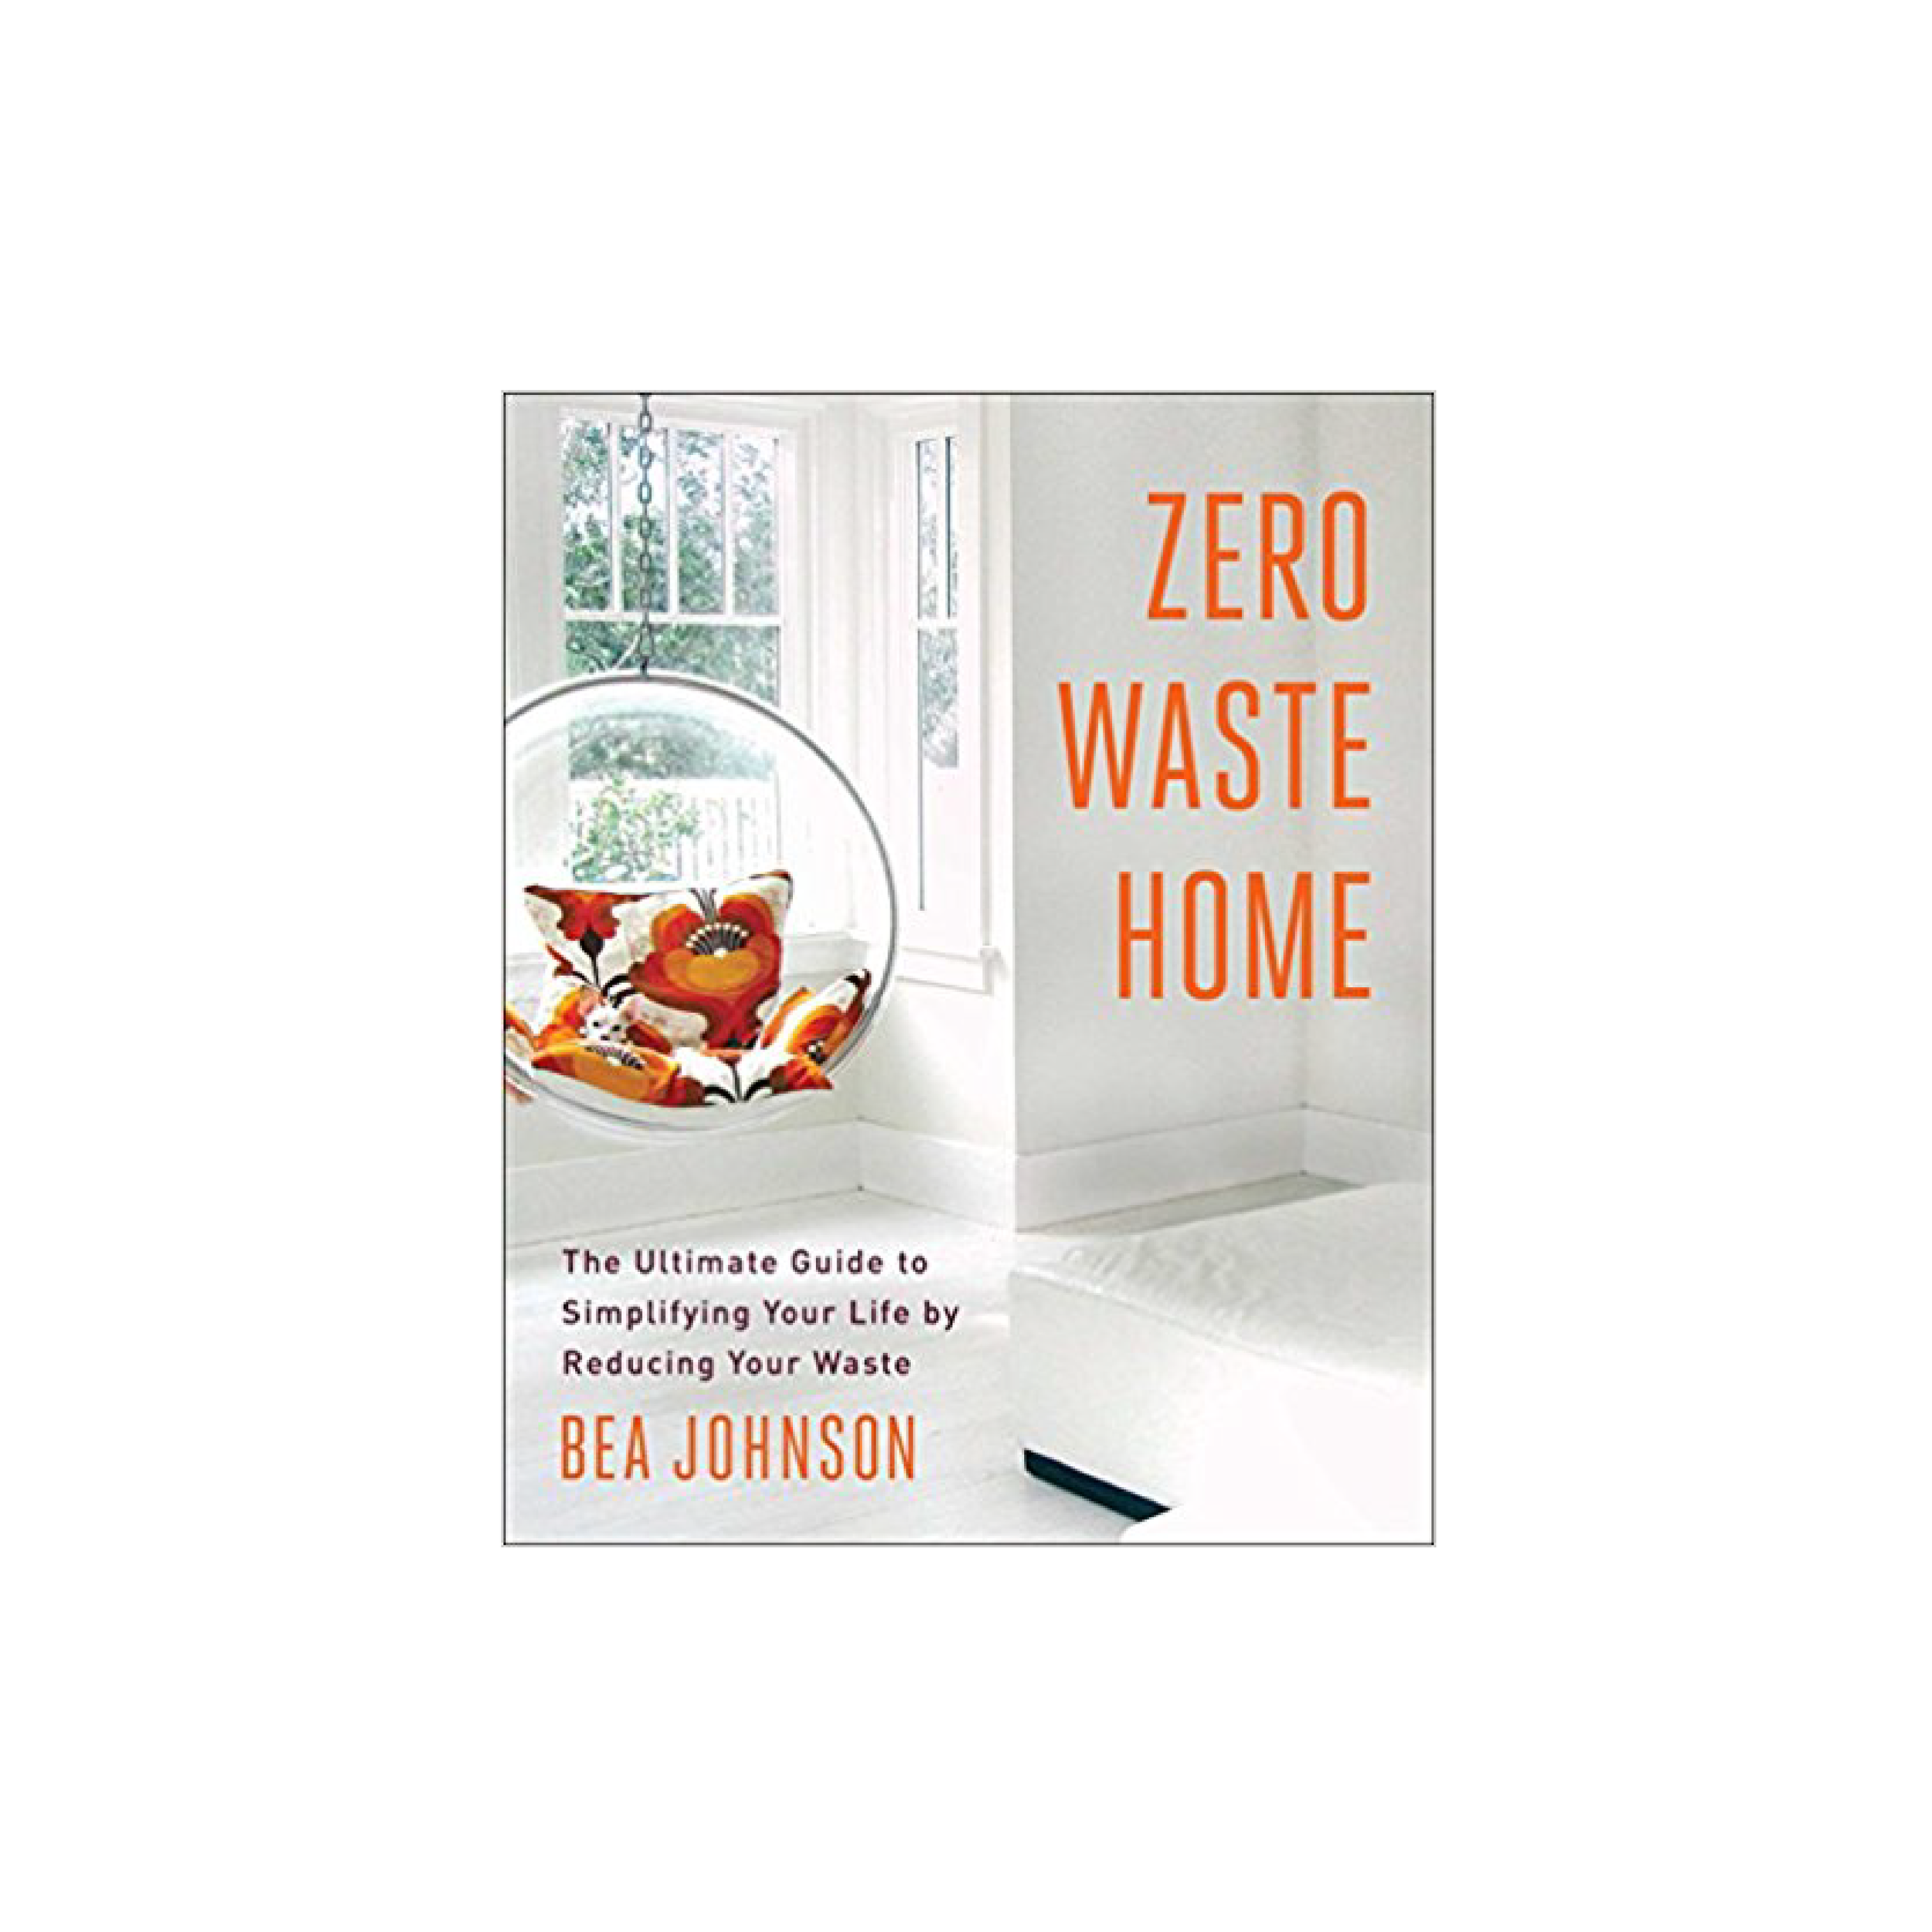 Written by The Mother of Zero Waste herself - this is the best book there is for learning how-to live a Zero-Waste lifestyle!